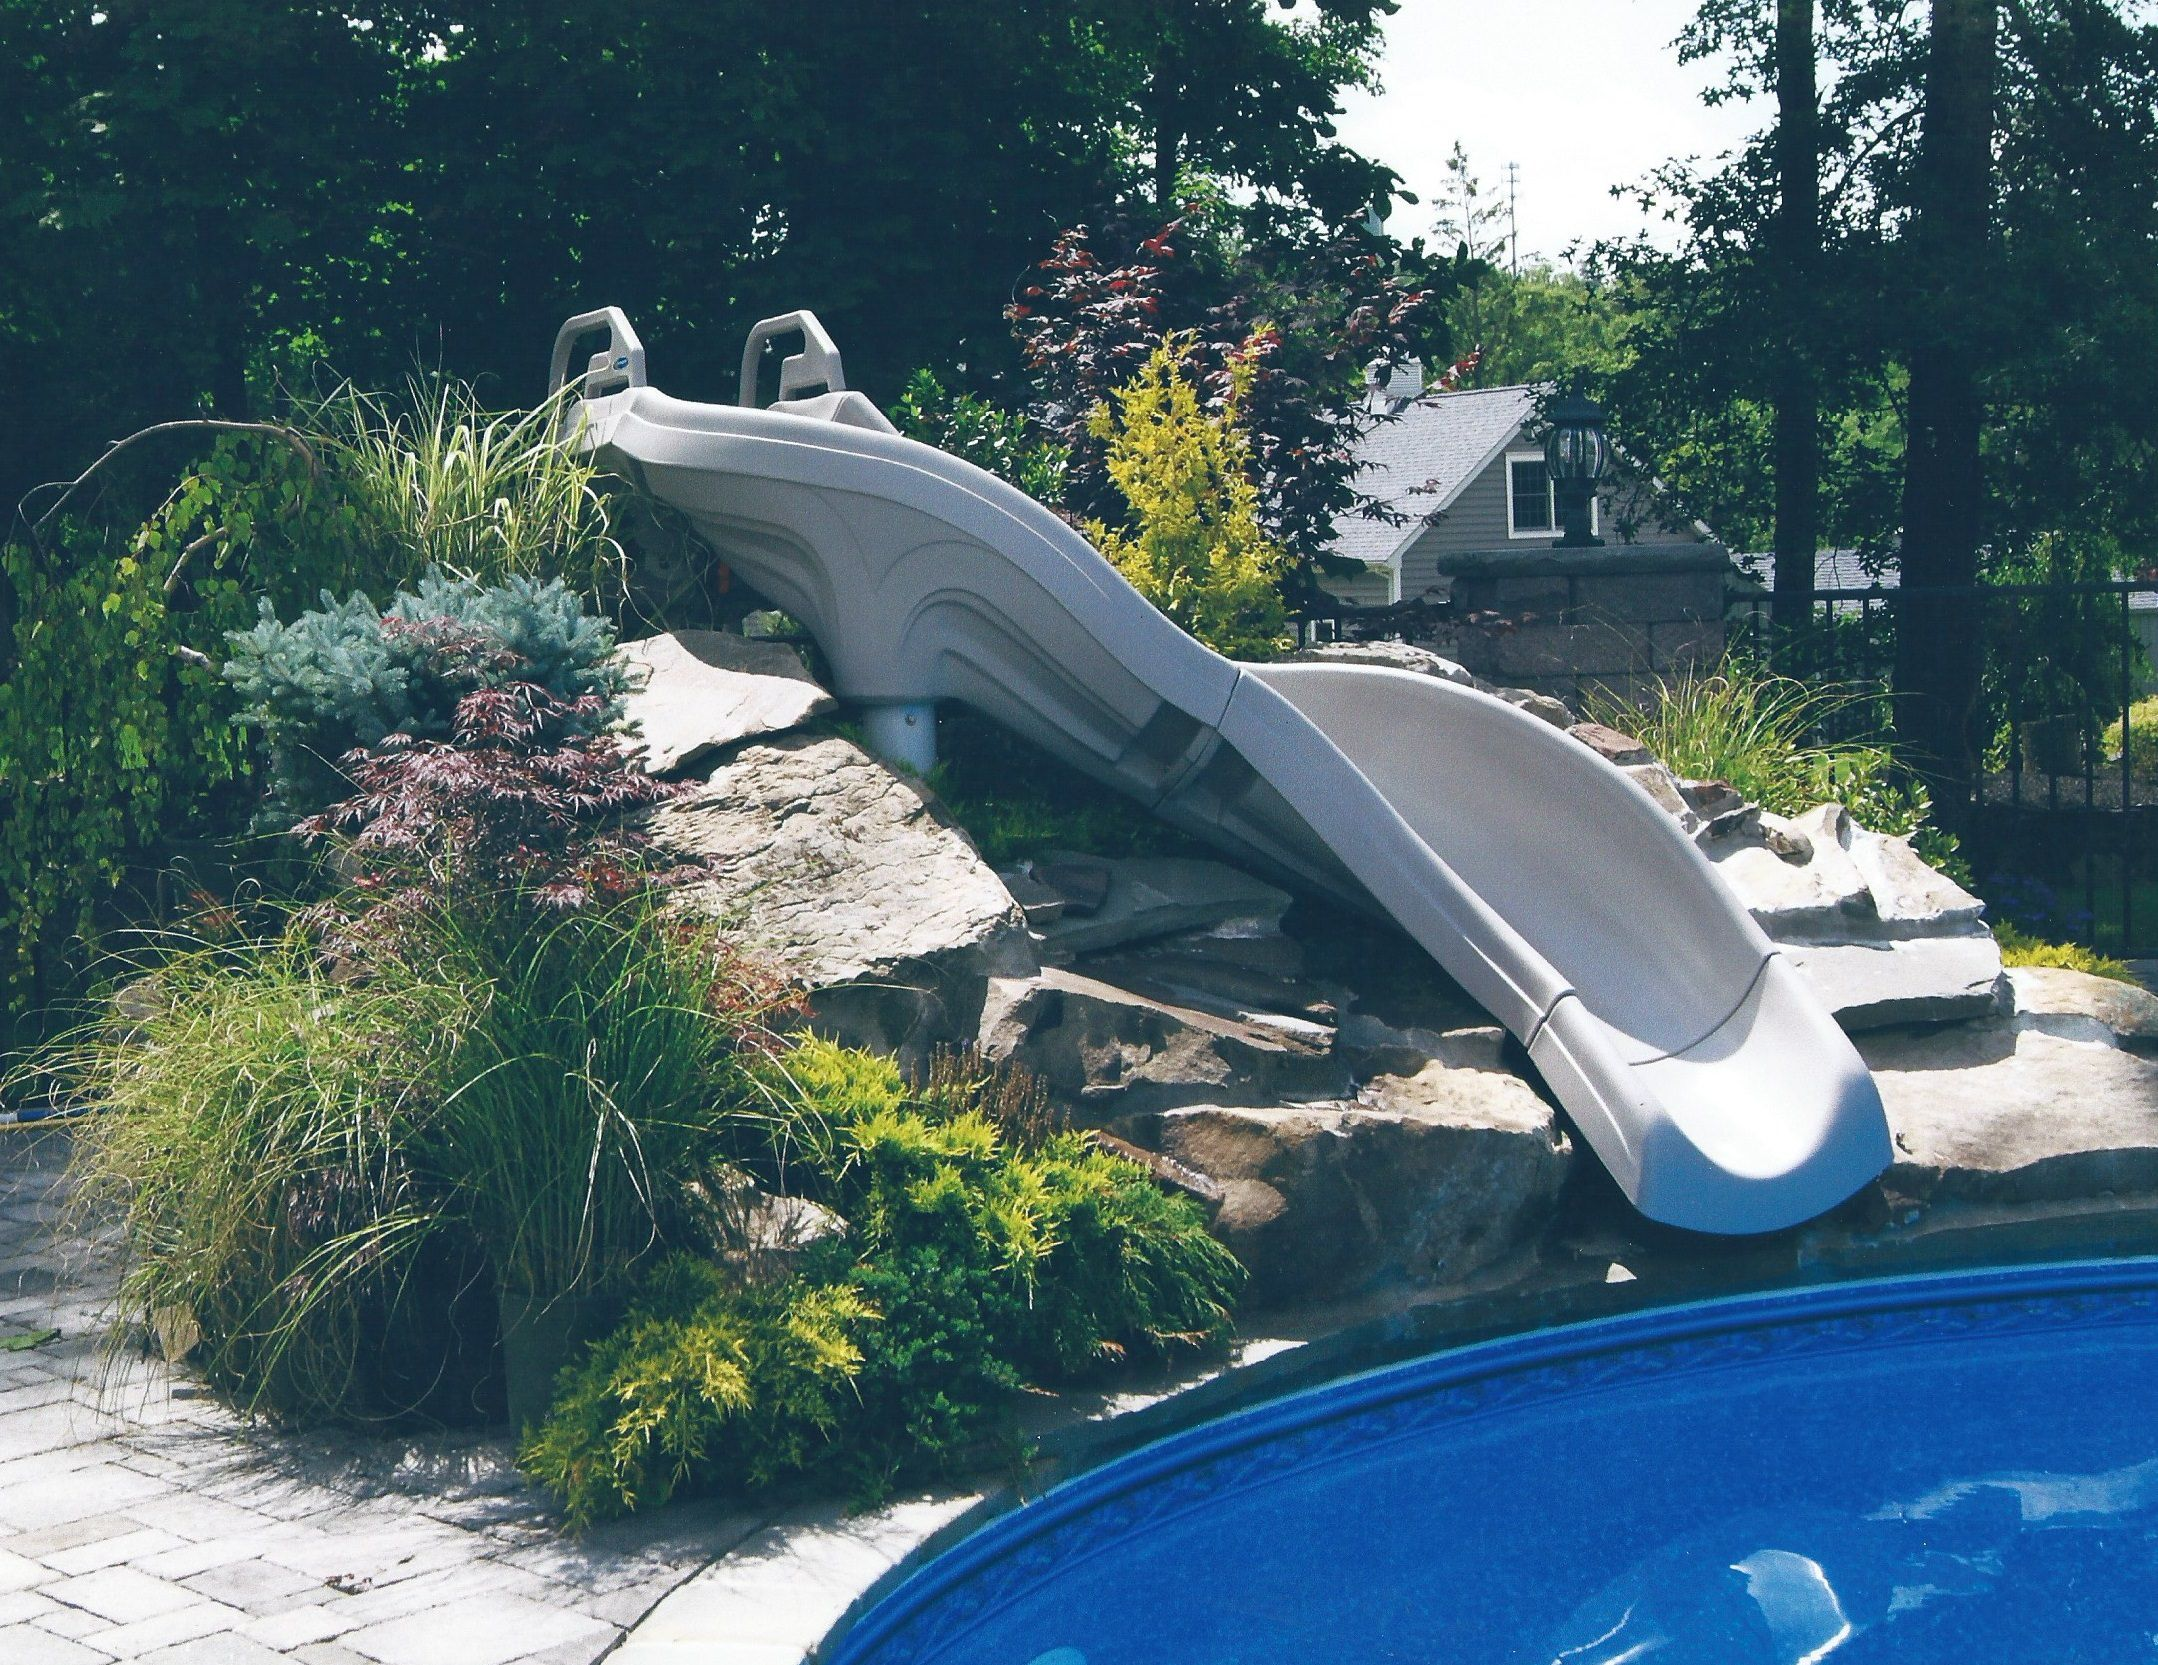 Inground Pools With Slide pool slides for inground pools | show slideshow] | ideas for the